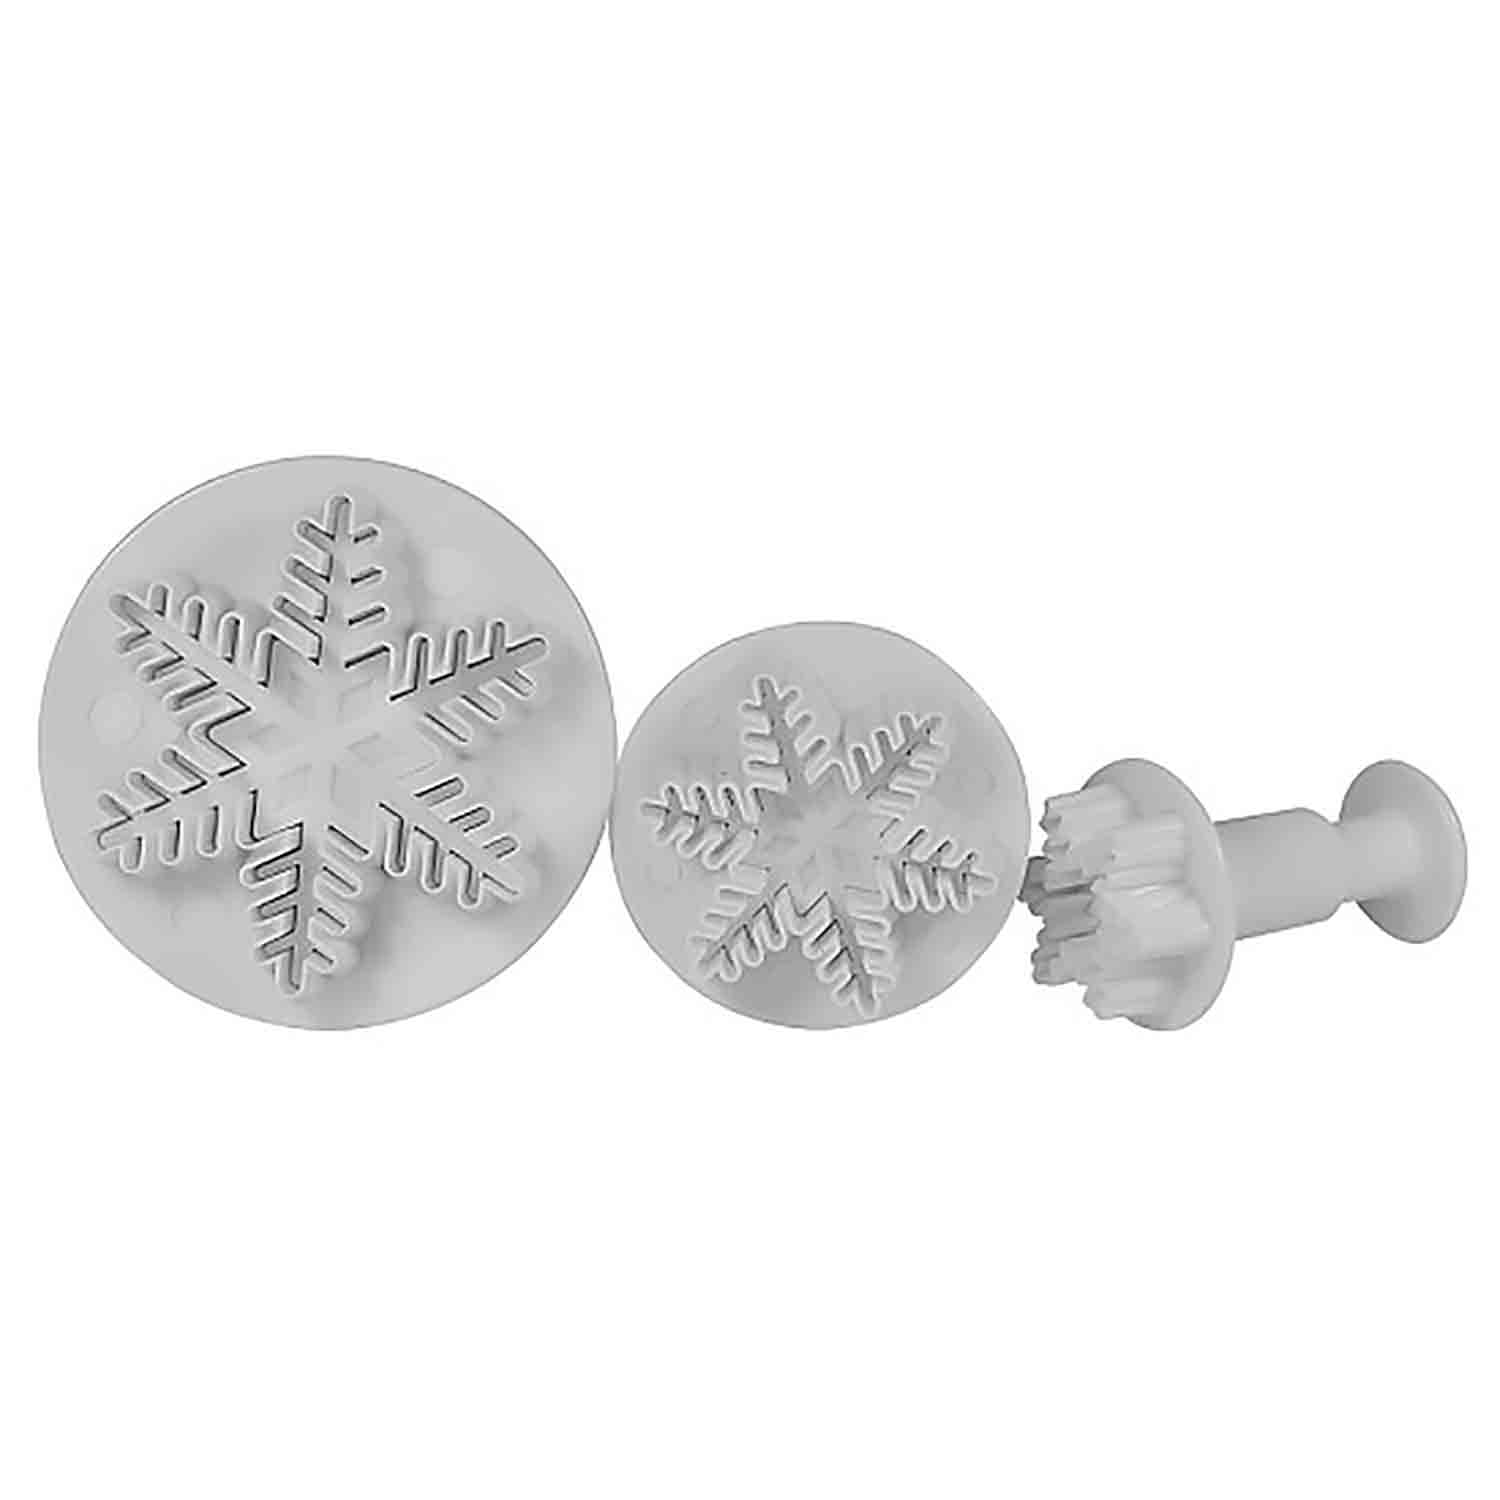 Snowflake Plunger Cutter Set